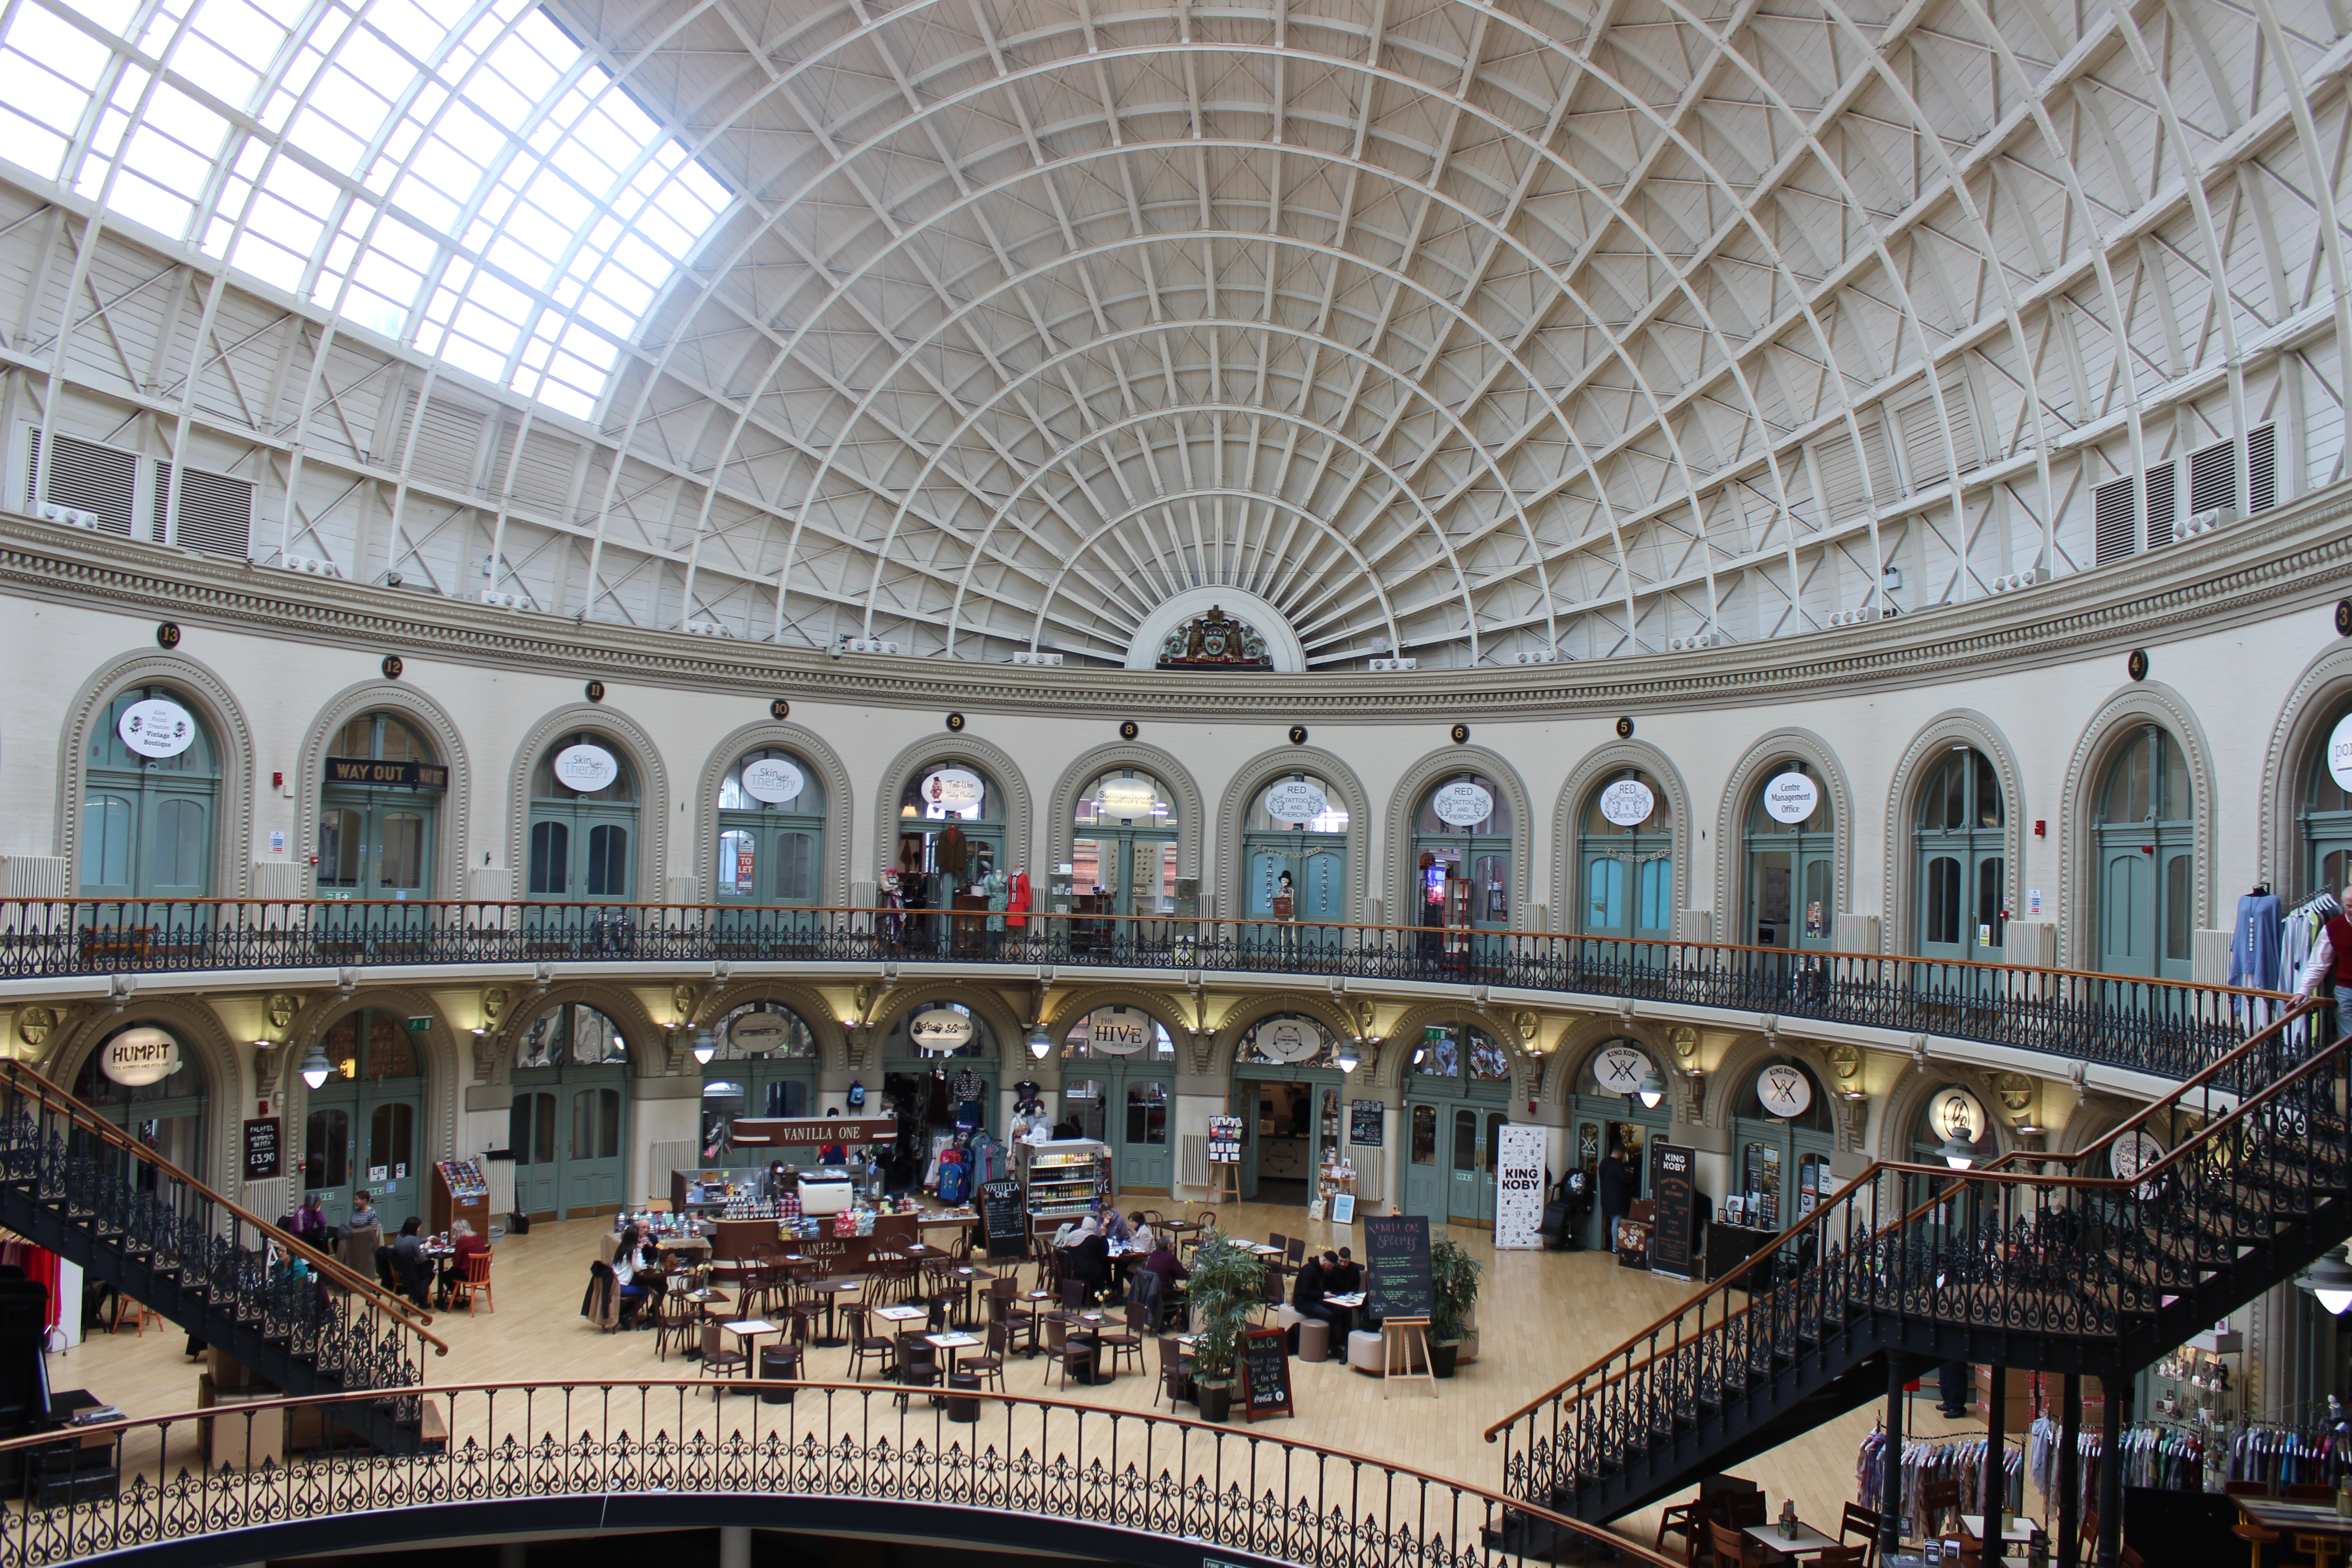 Student Natalie's image of the Corn Exchange